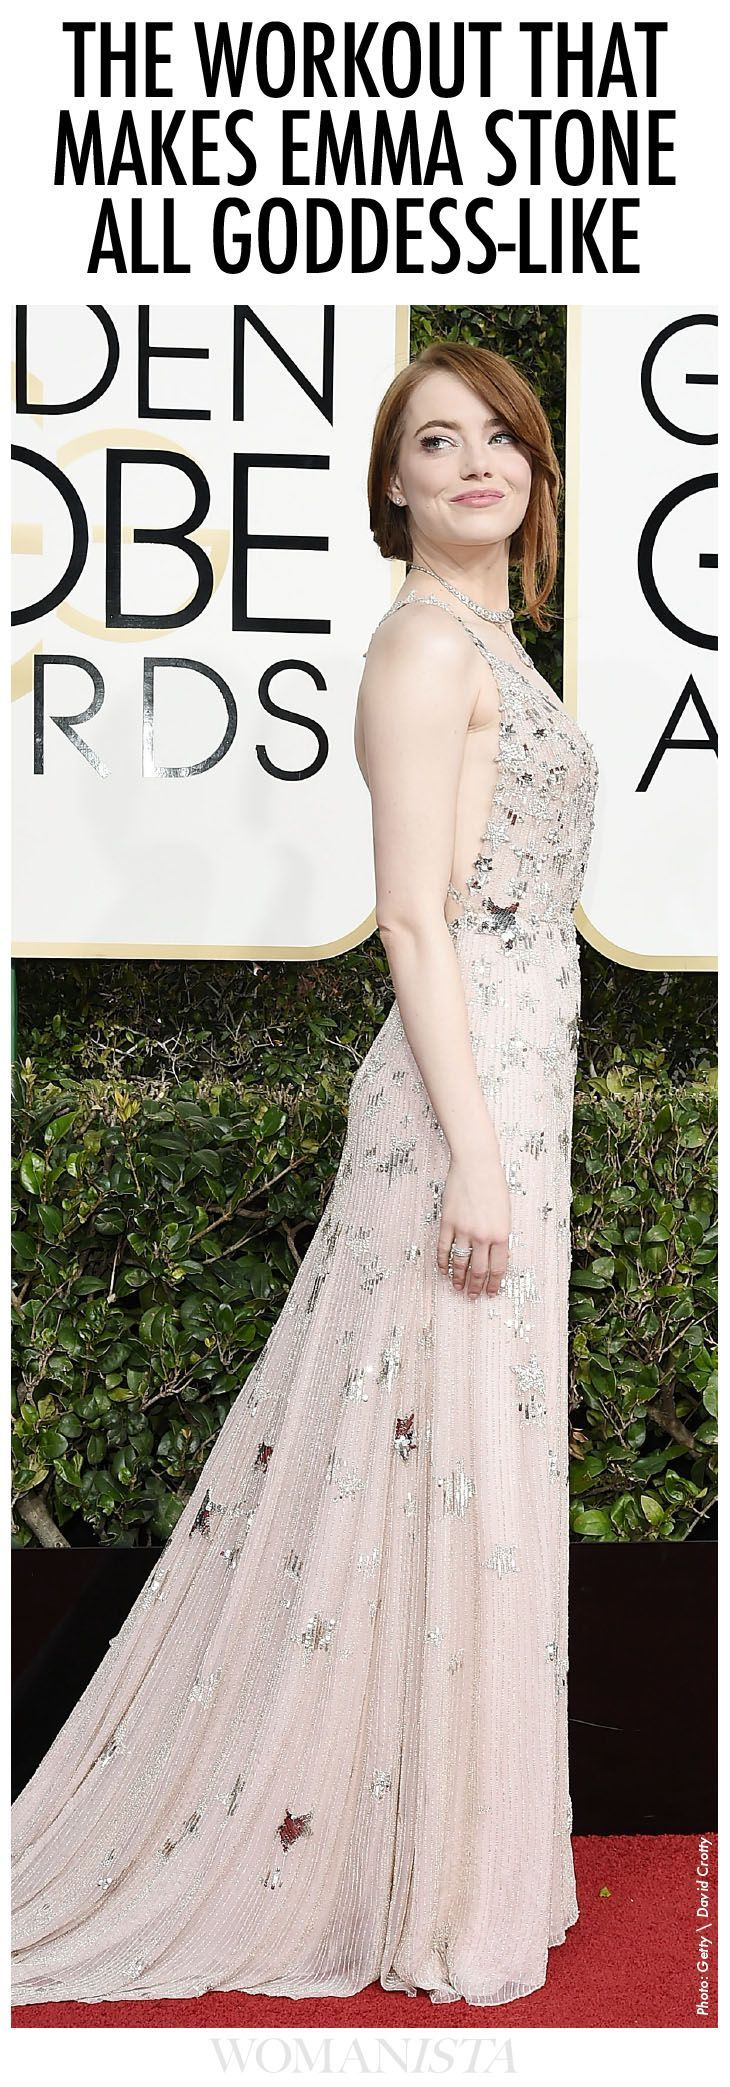 Emma Stone's workout plan to look this good, is one we want to save. Check it out at http://Womanista.com